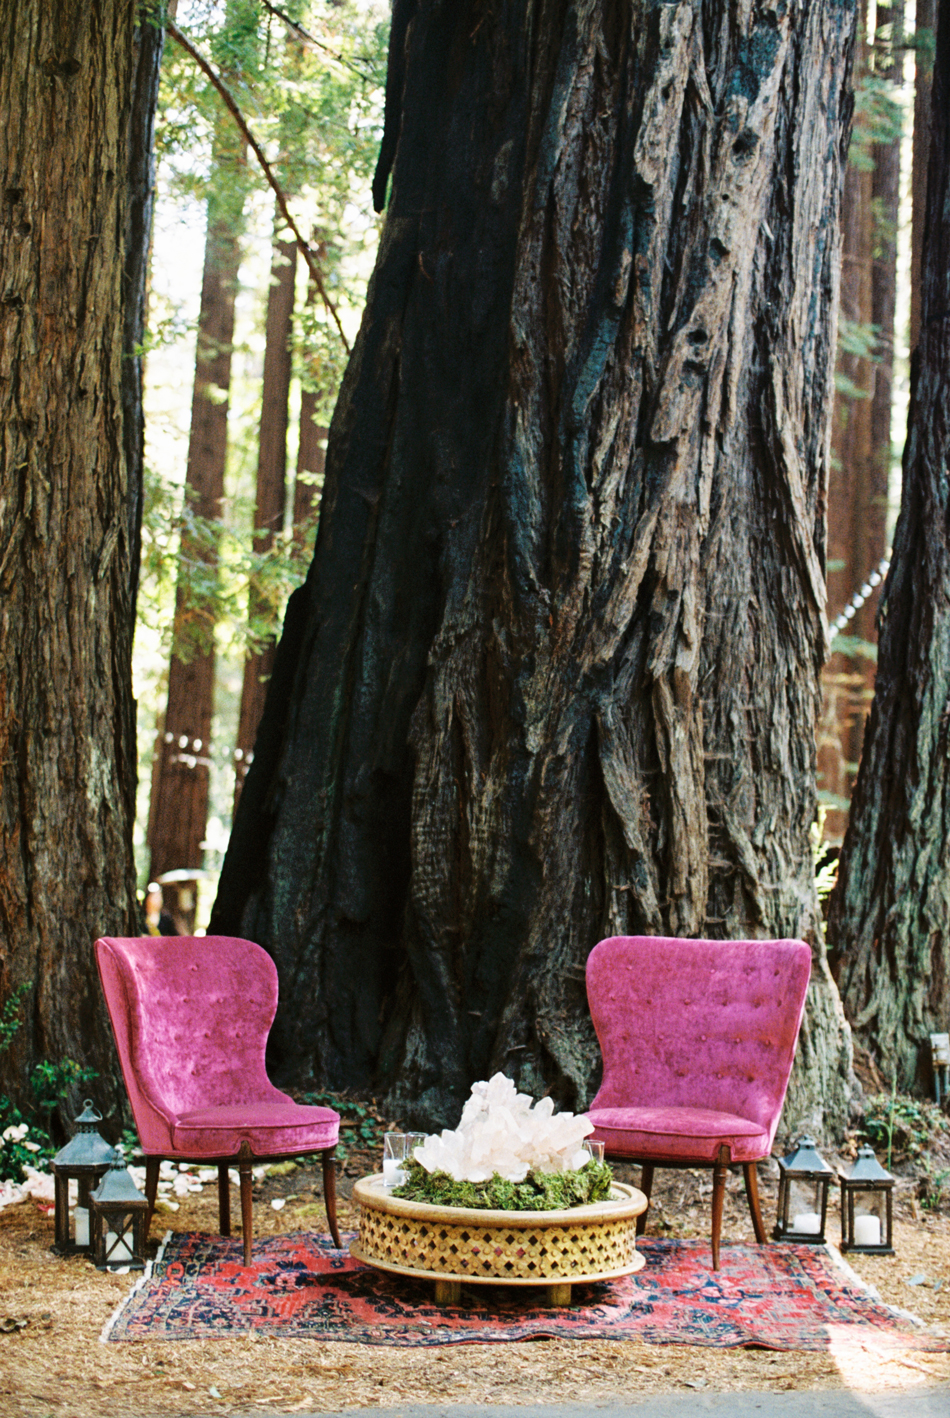 fuchsia chairs outdoor forest wedding lounge